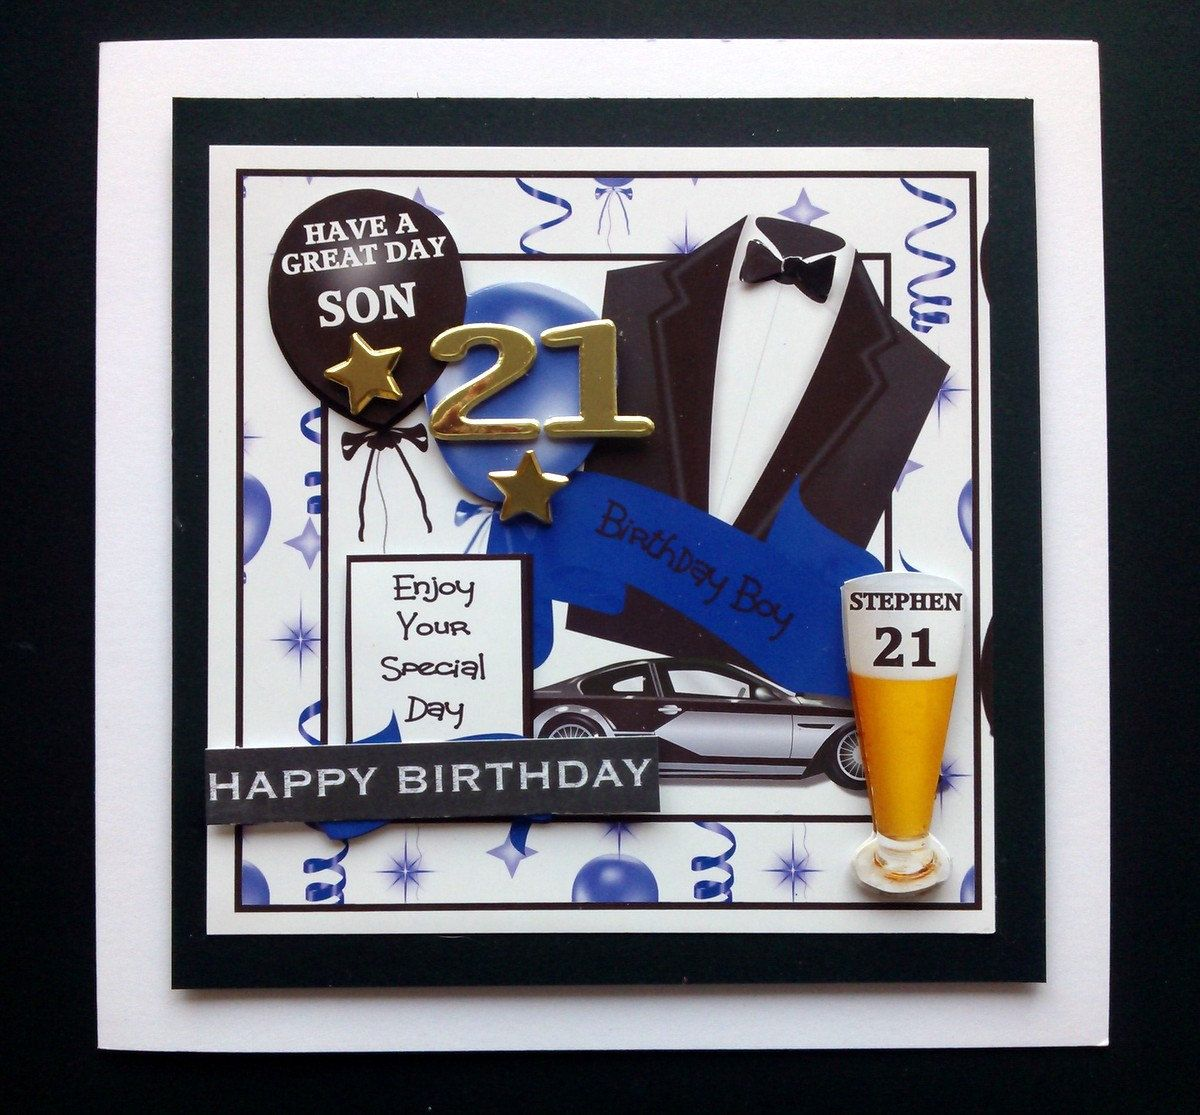 18th Birthday Cards Son ~ Personalised male th st birthday card son grandson nephew friend cous view more on